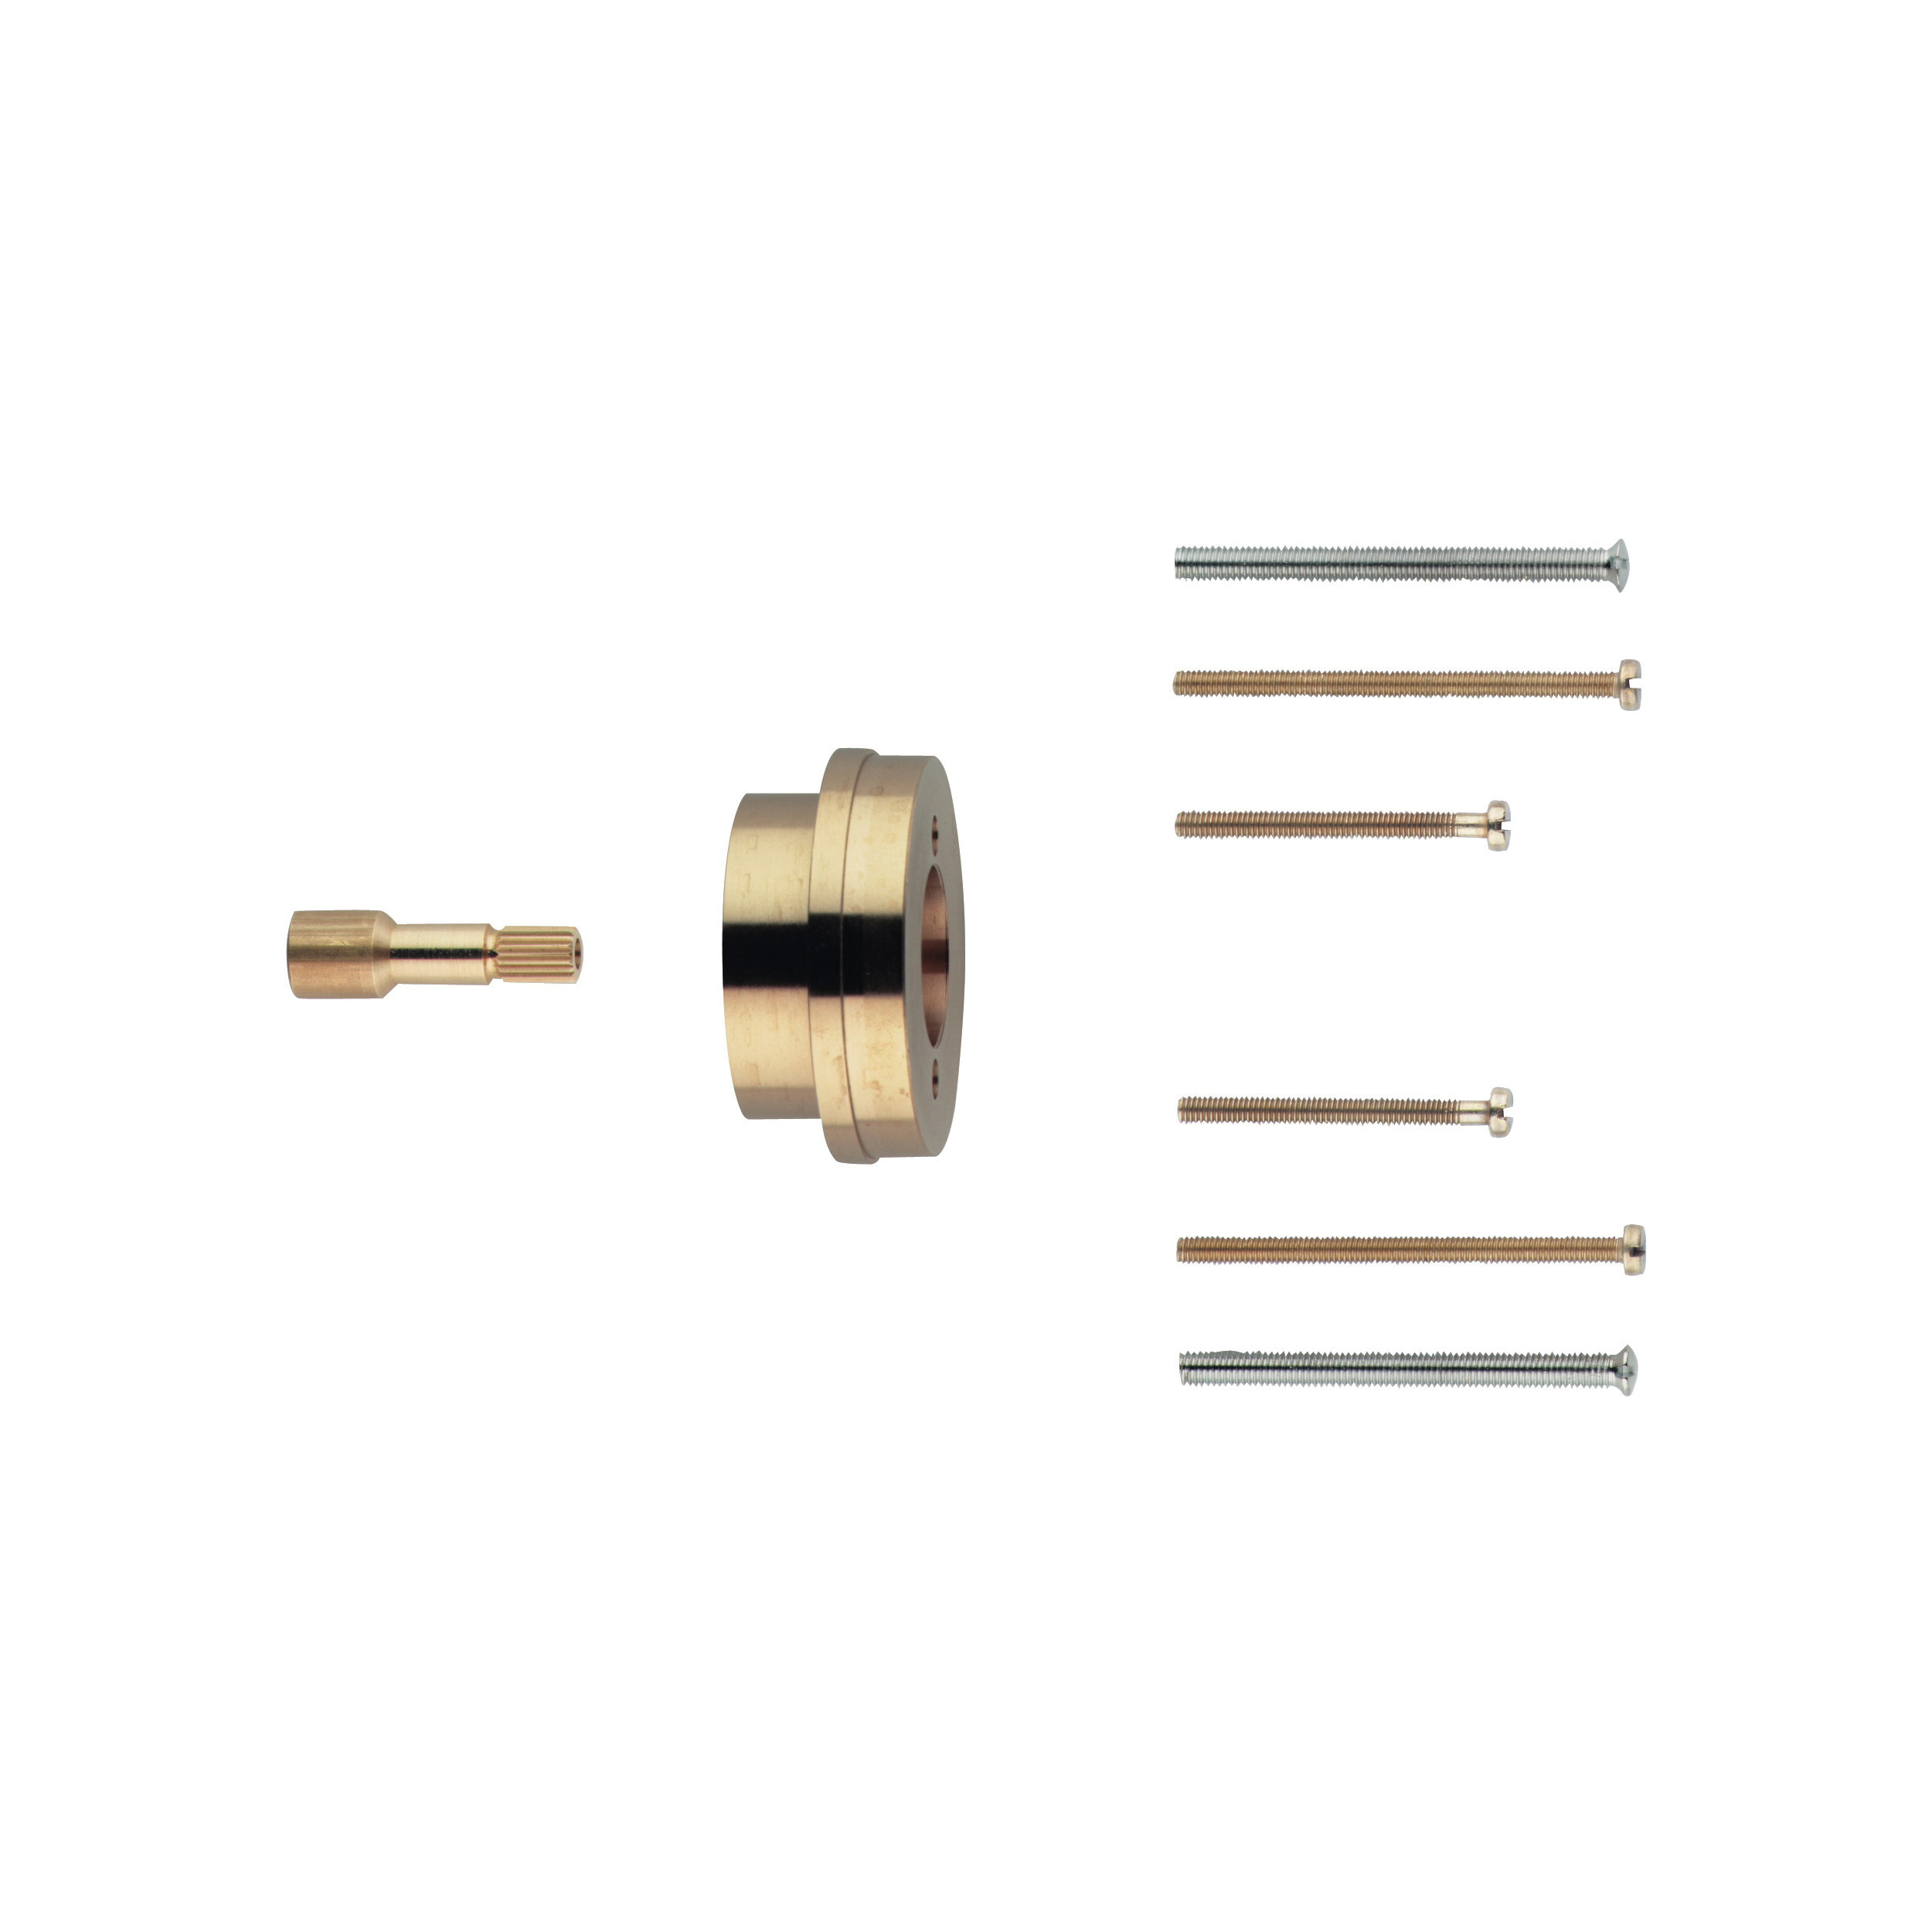 GROHE 47344000 Extension Kit, 1 in, For Use With: GrohSafe® 25 mm Pressure Balance Valve